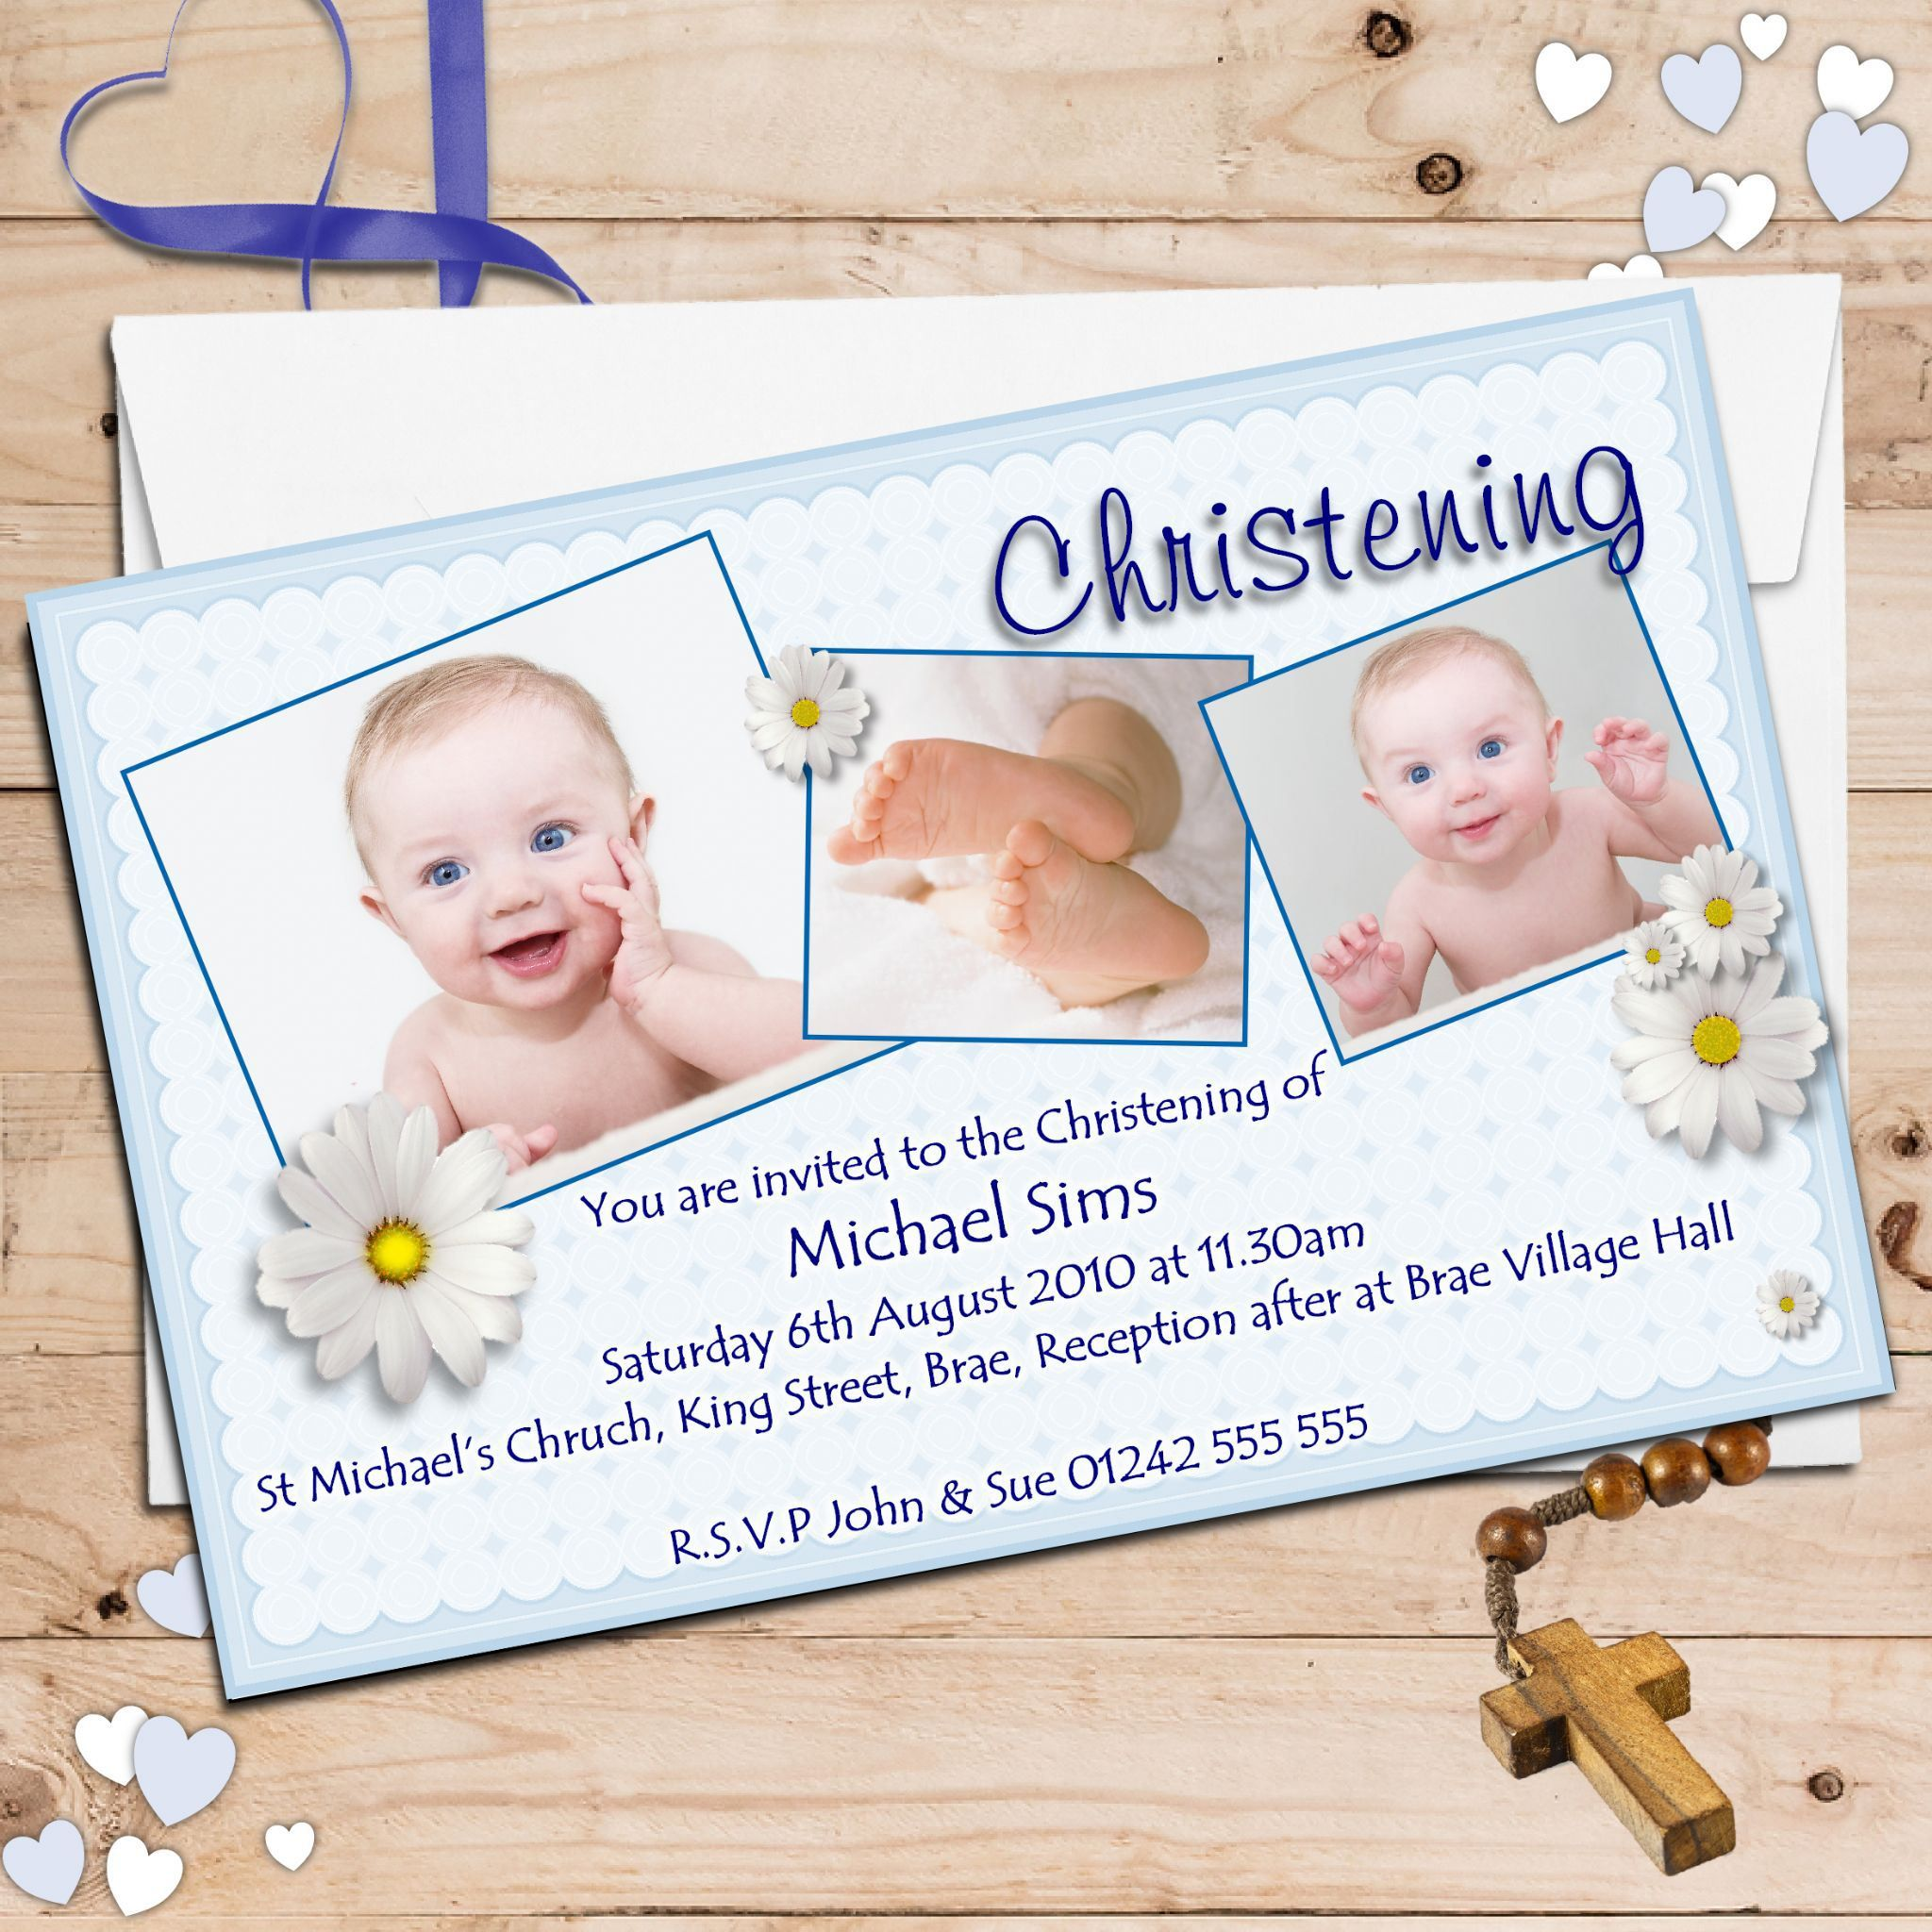 Invitation Card For Christening Invitation Card For Christening